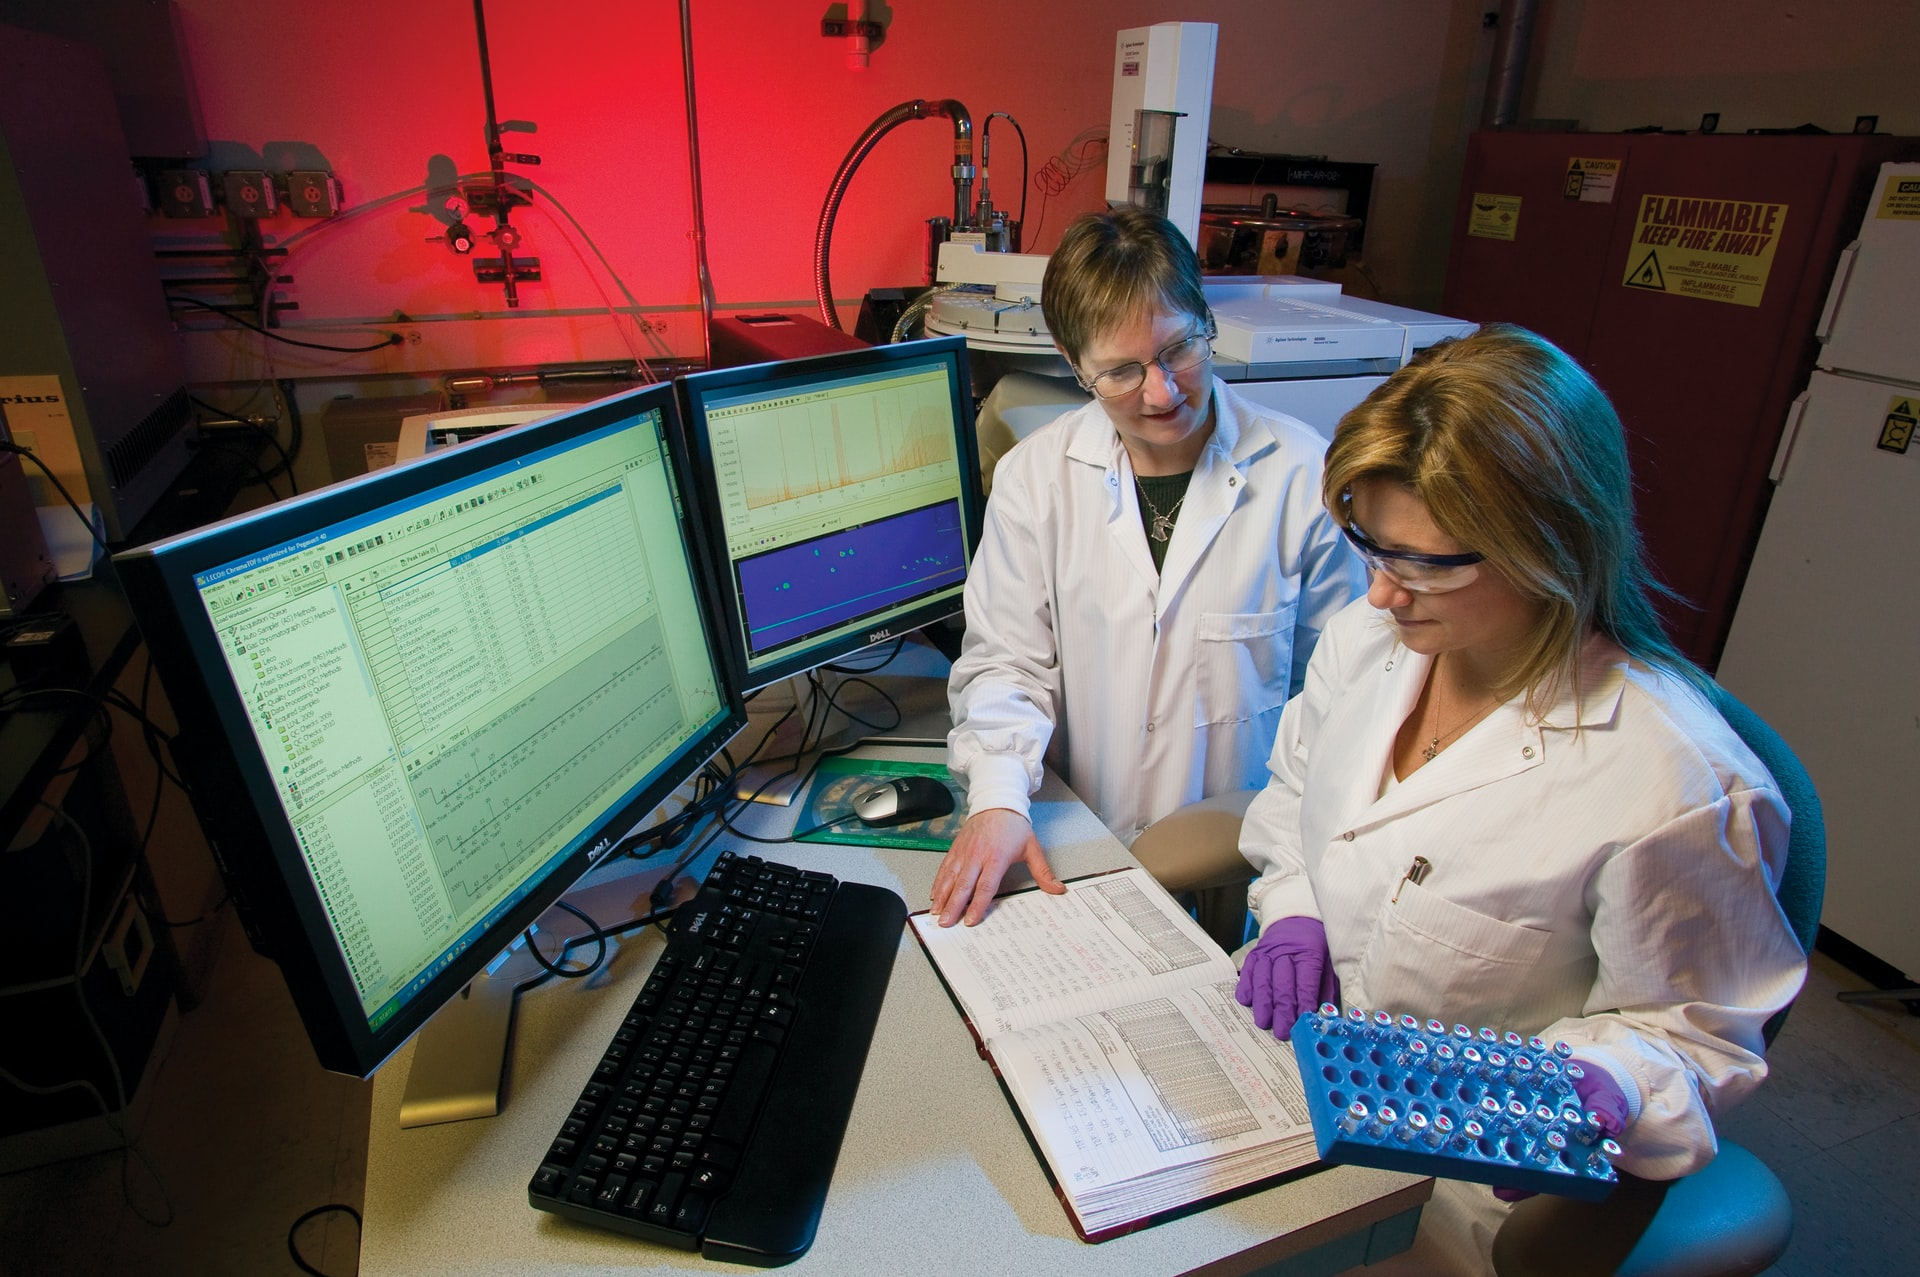 software for clinical trials used in a clinical trial